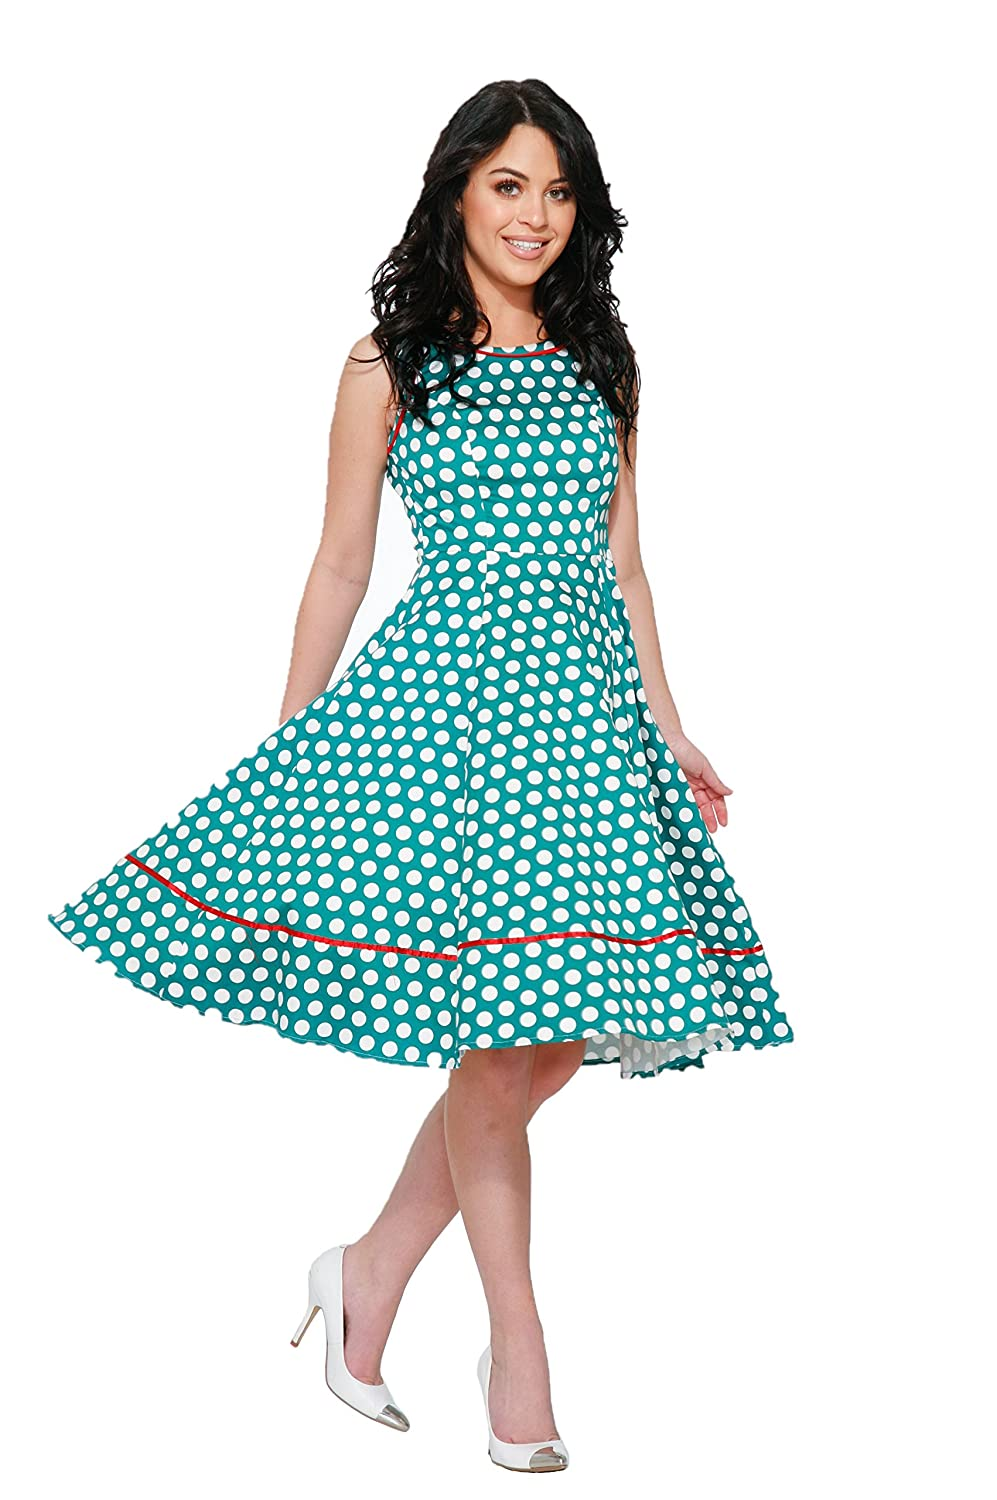 Vintage Polka Dot Dresses – 50s Spotty and Ditsy Prints Hearts & Roses Gretta Day Dress (Shipped from The US and US Sizes) $54.88 AT vintagedancer.com